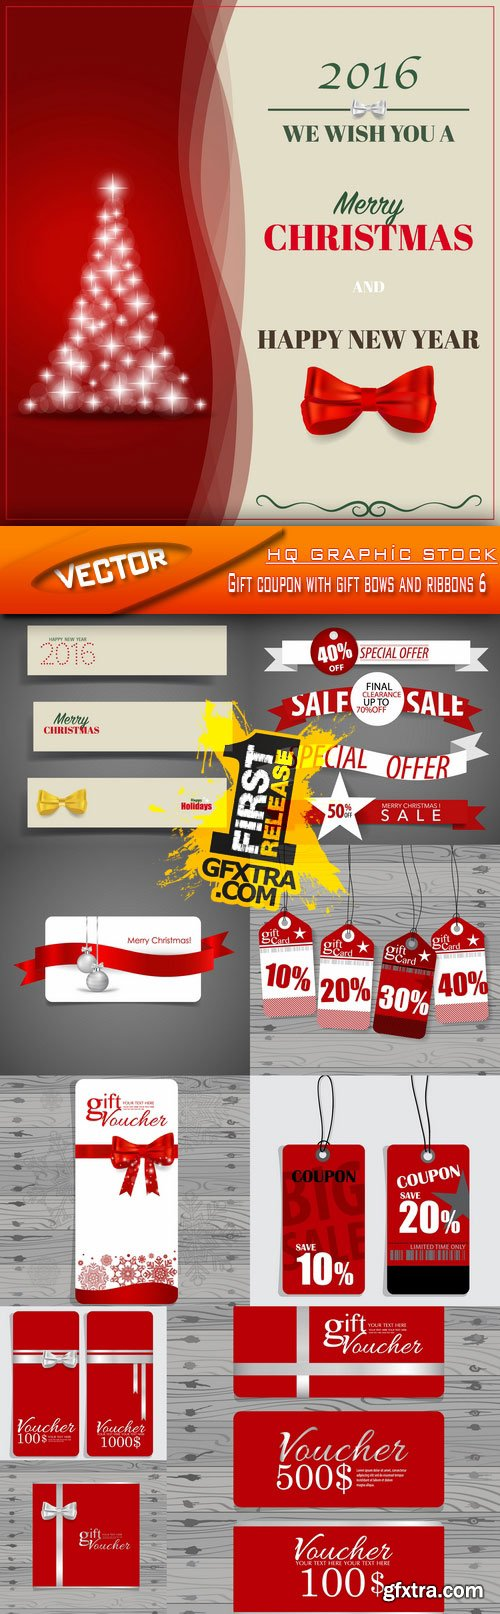 Stock Vector - Gift coupon with gift bows and ribbons 6